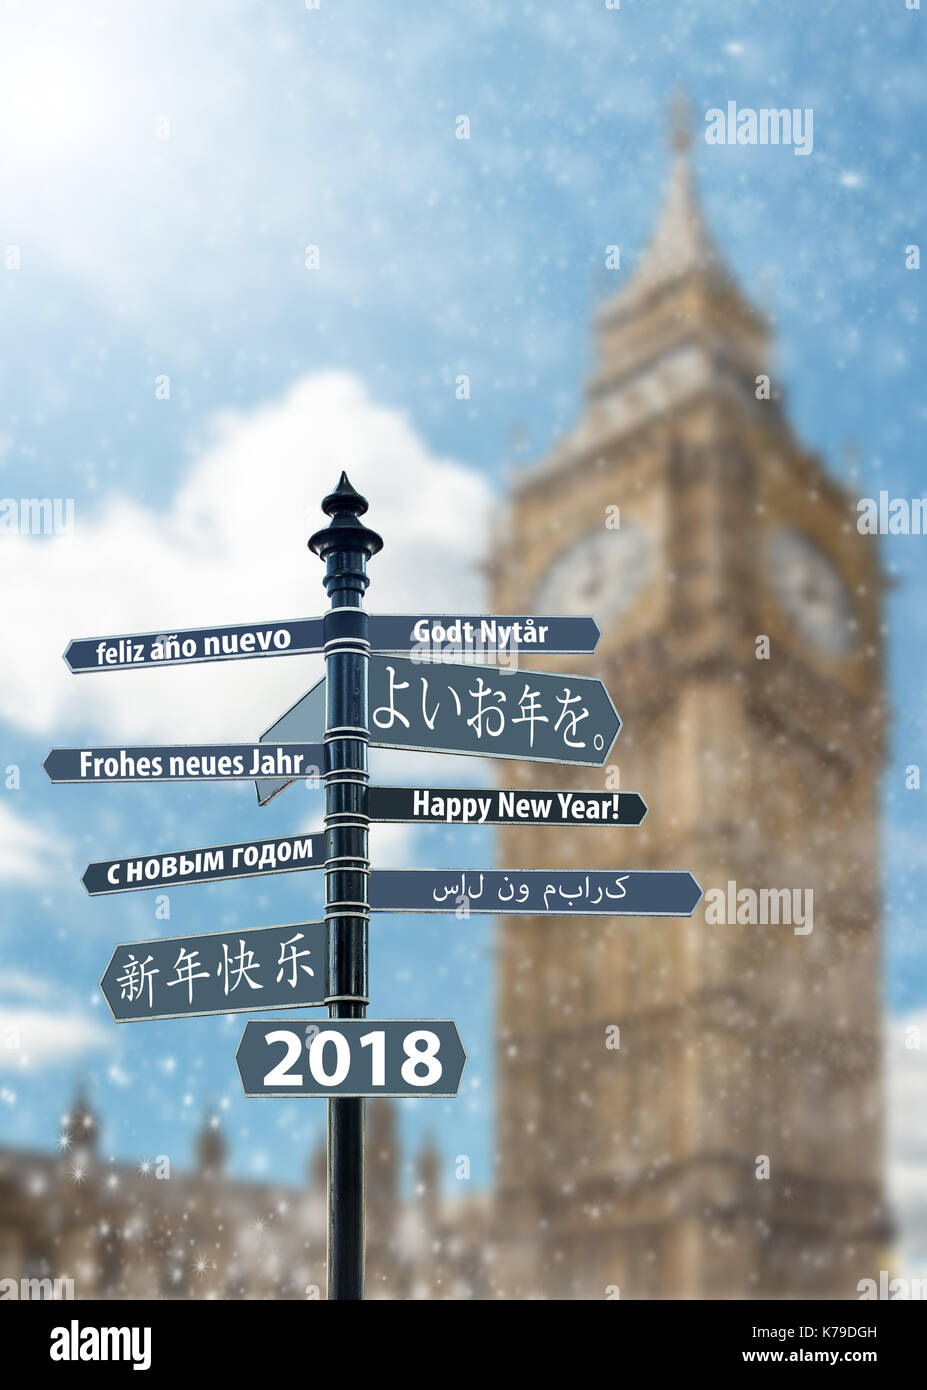 Signpost whit Happy New Year in many languages, Big Ben Clock Tower in background - Stock Image